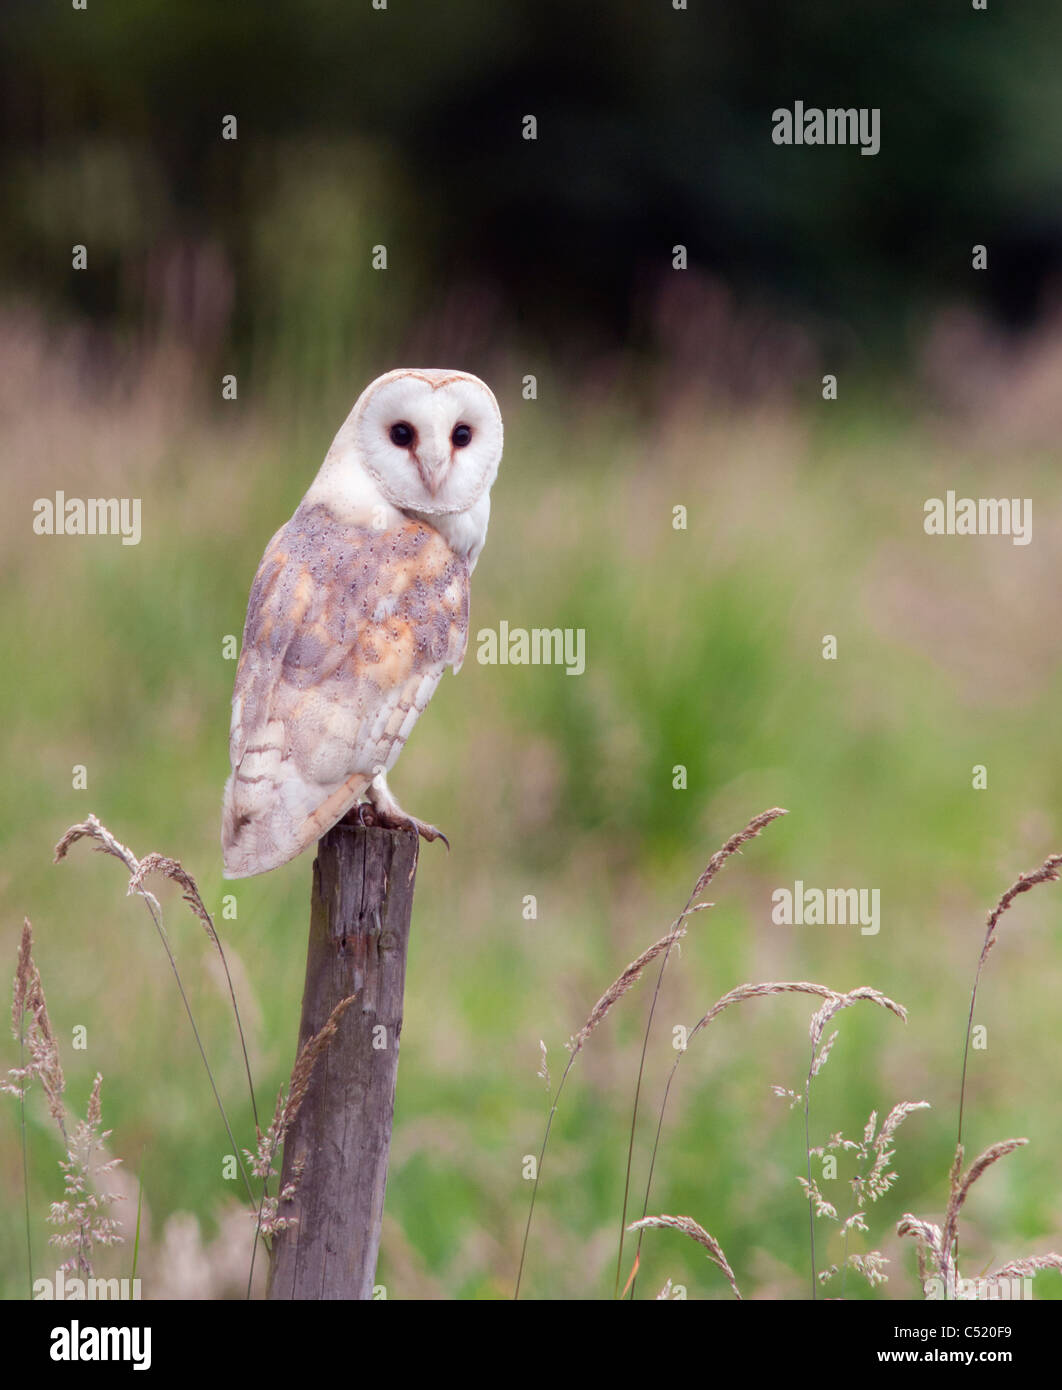 Wild Barn Owl perched on wooden fence post, Norfolk - Stock Image